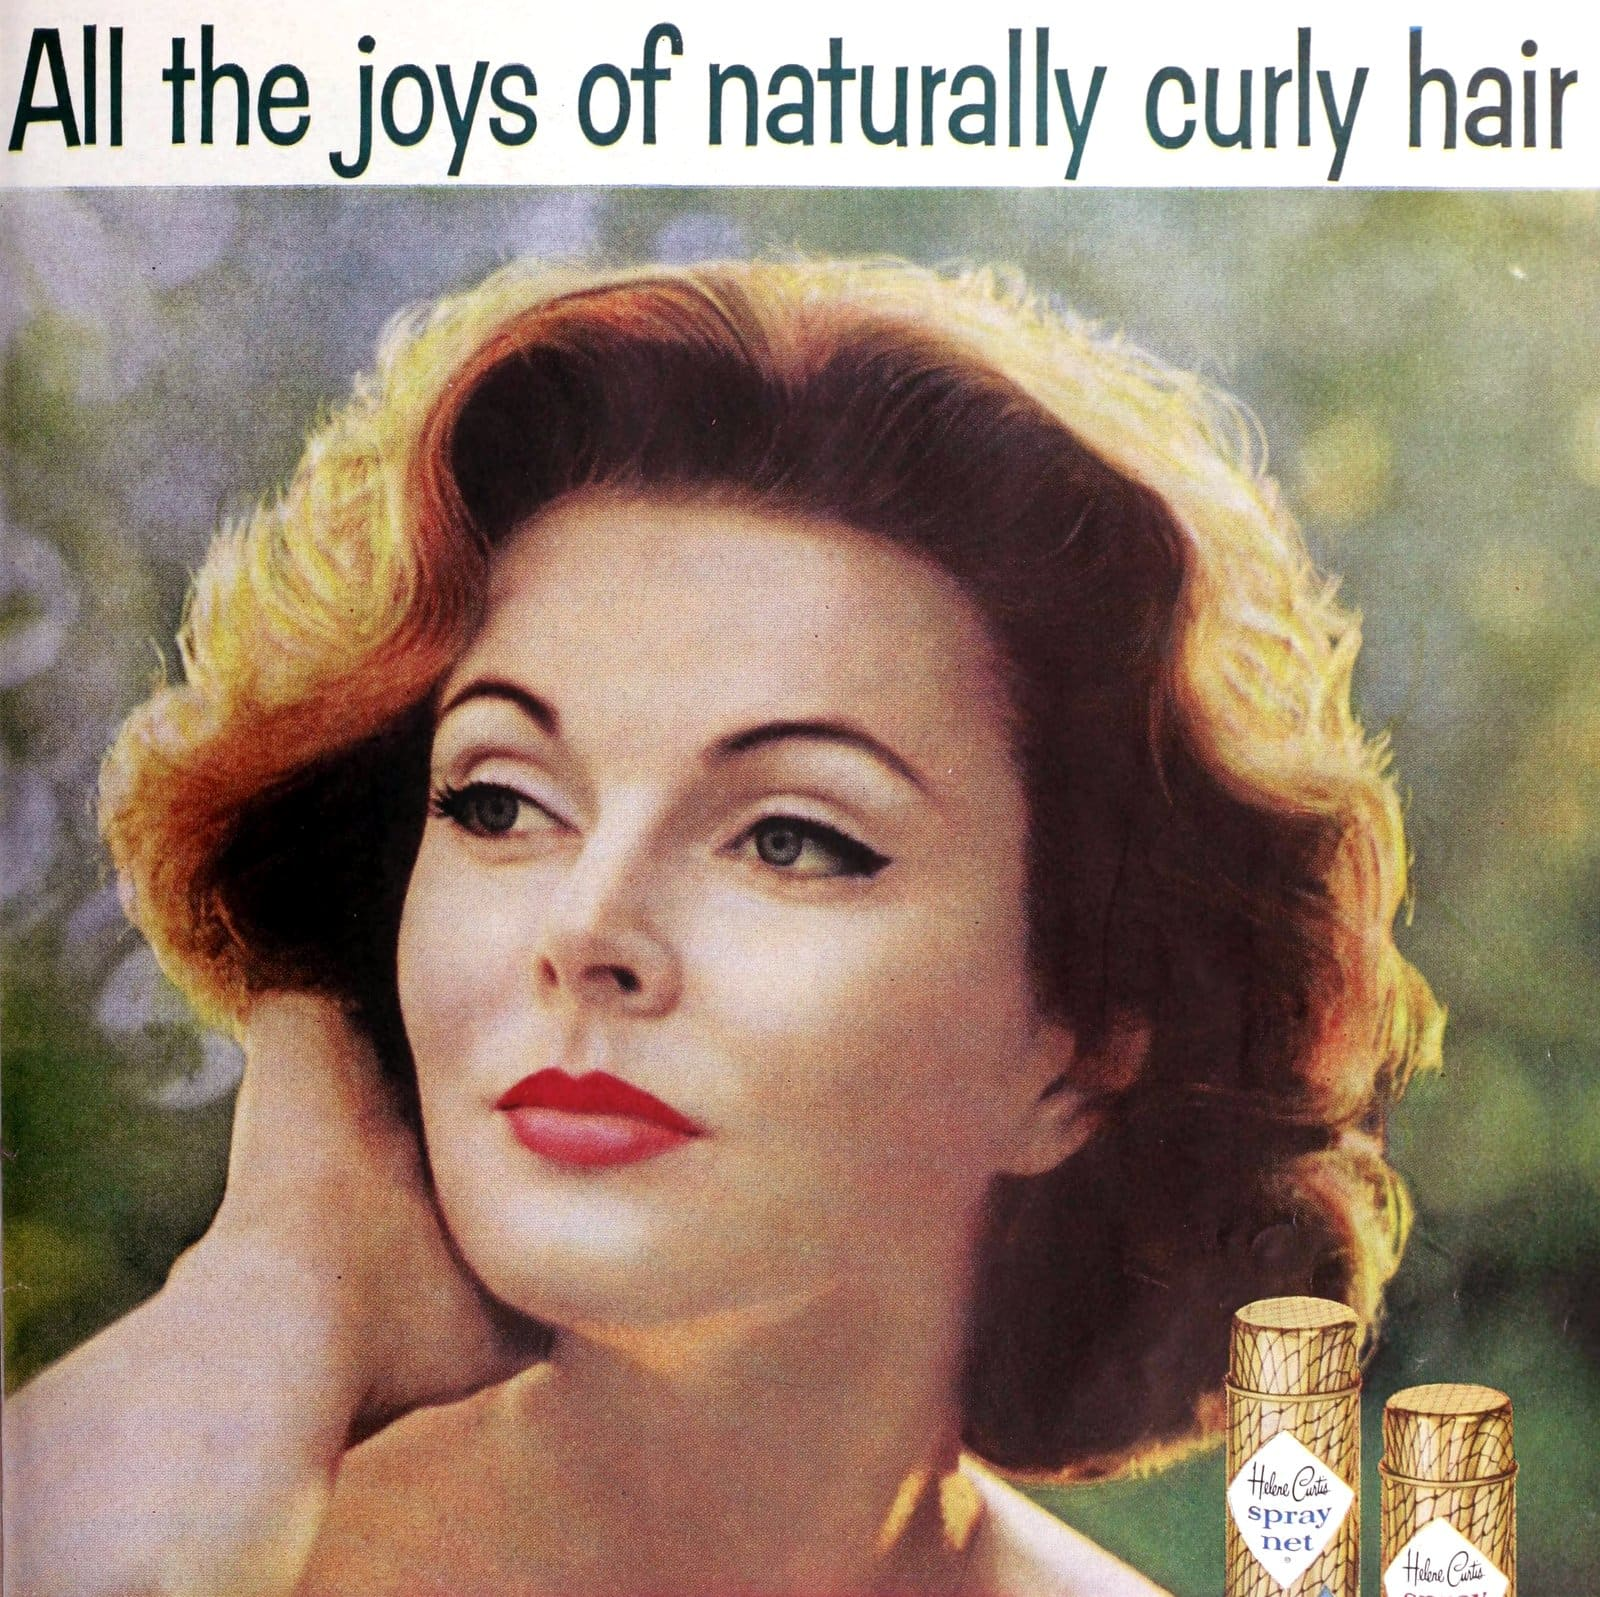 1950s hairspray brands for all the joys of naturally curly hair